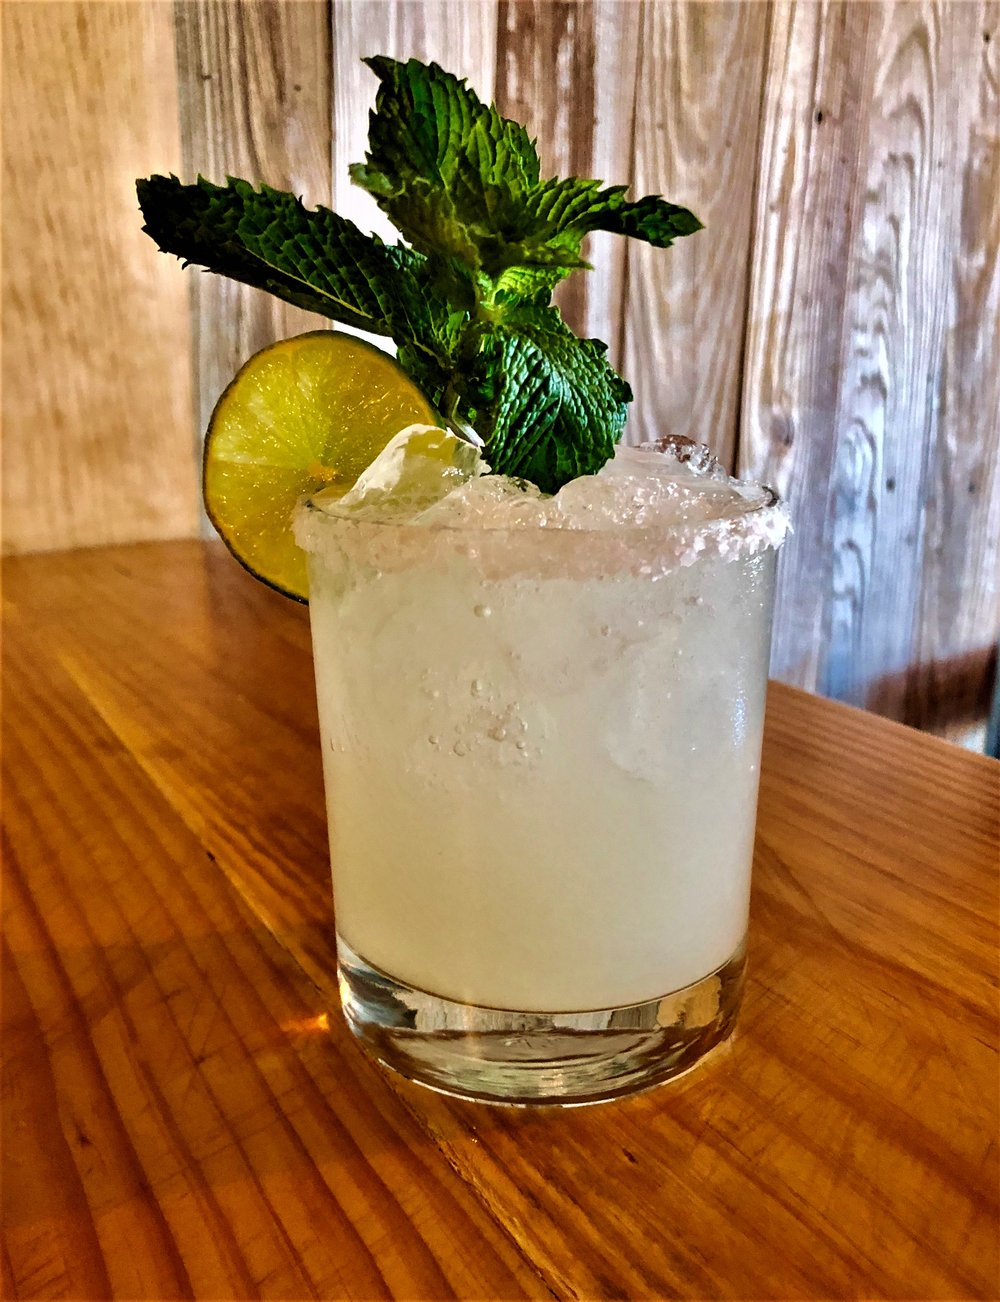 The Last One  - Salt the rim & fill glass with ice. In a shaker add 1 or 2 shots of WILD RAG VODKA or WILD RAG MESQUITE BEAN VODKA, 1.5 fresh squeezed key lime juice, 1 oz Simple Syrup, 1 oz Triple Sec, & 2 oz water - shake well and pour into glass. Garnish with key lime slice or wedge & mint leaf.